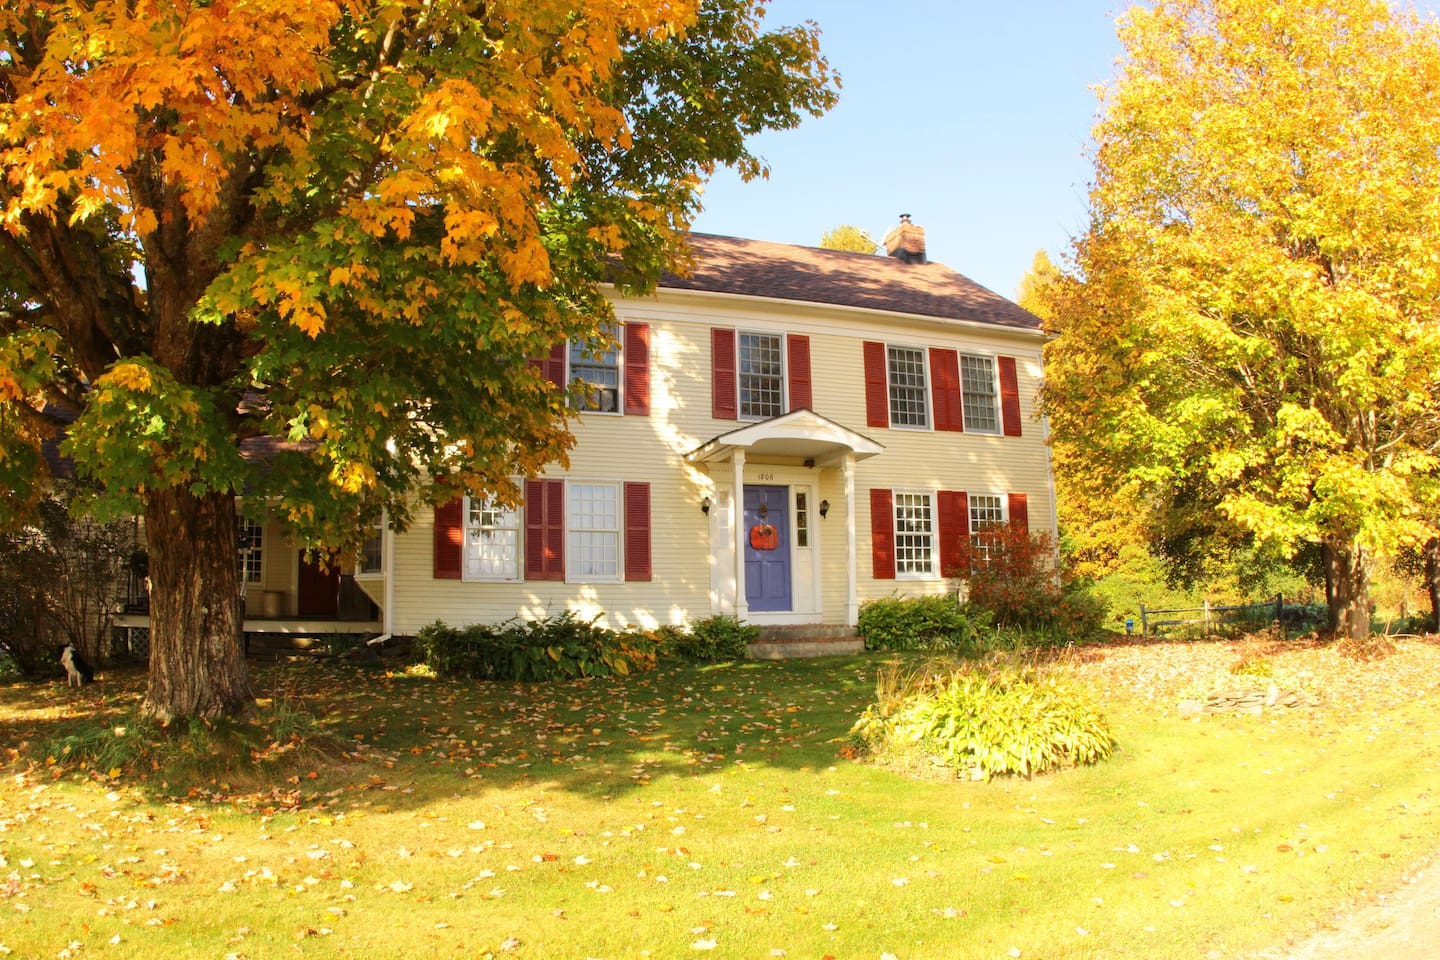 Johnnycake Flats Bed and Breakfast, fall foliage